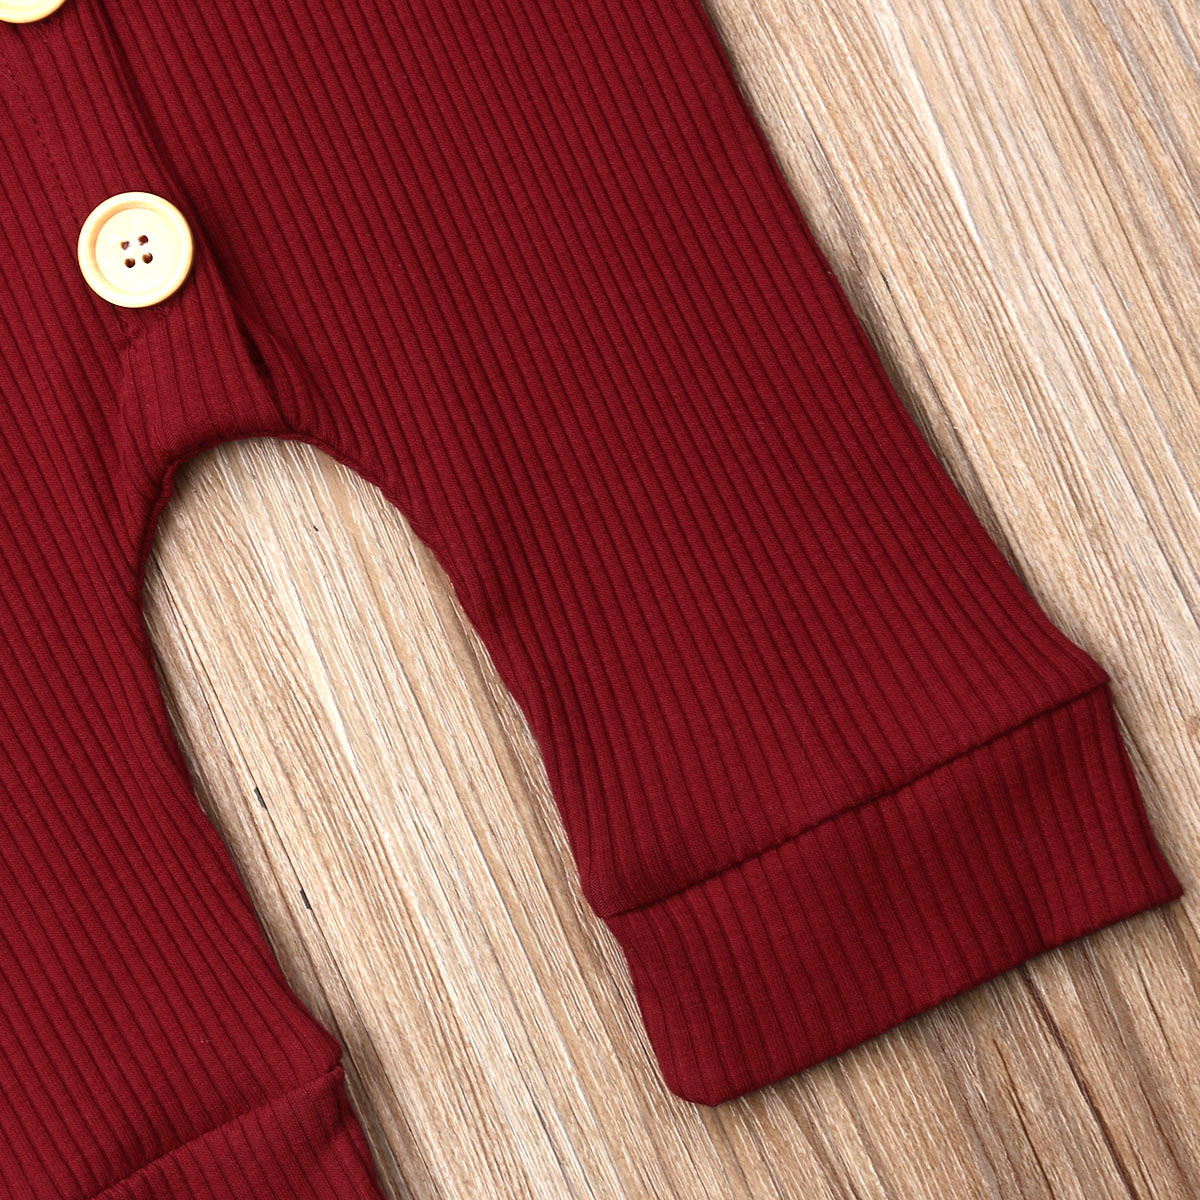 Hac7ebff1665f49d8b6a9806154bc07c8h Spring Fall Newborn Baby Girl Boy Clothes Long Sleeve Knitted Romper + Headband Jumpsuit 2PCS Outfit 0-24M